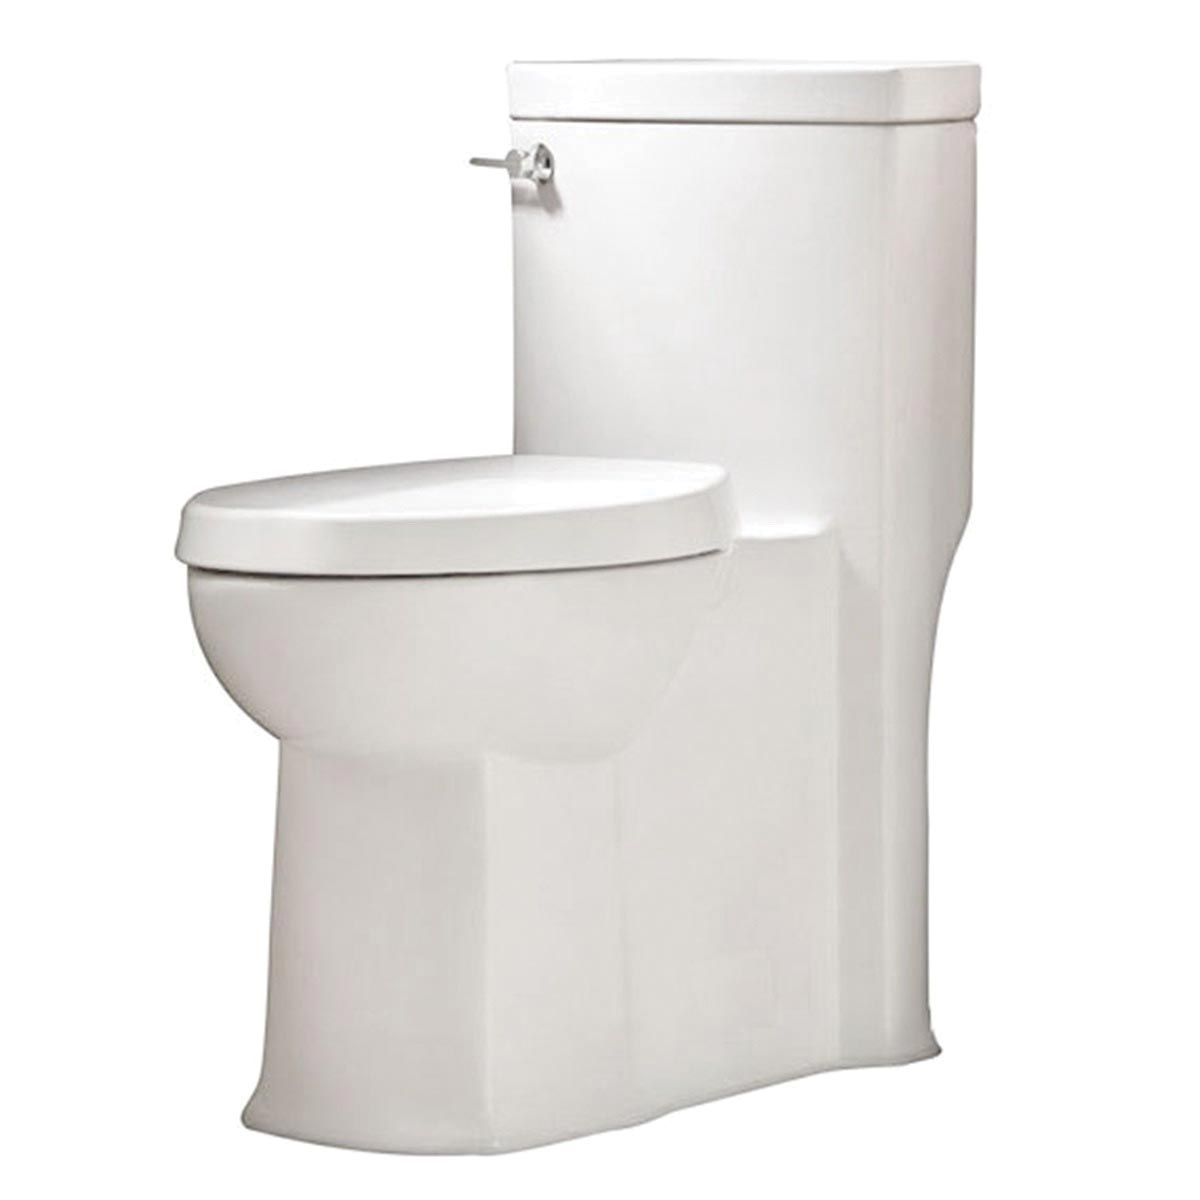 American Standard 2891128.020 Boulevard® FloWise® Right Height™ 1-Piece Toilet, Elongated Bowl, 18-1/2 in H Rim, 1.28 gpf, White, Import